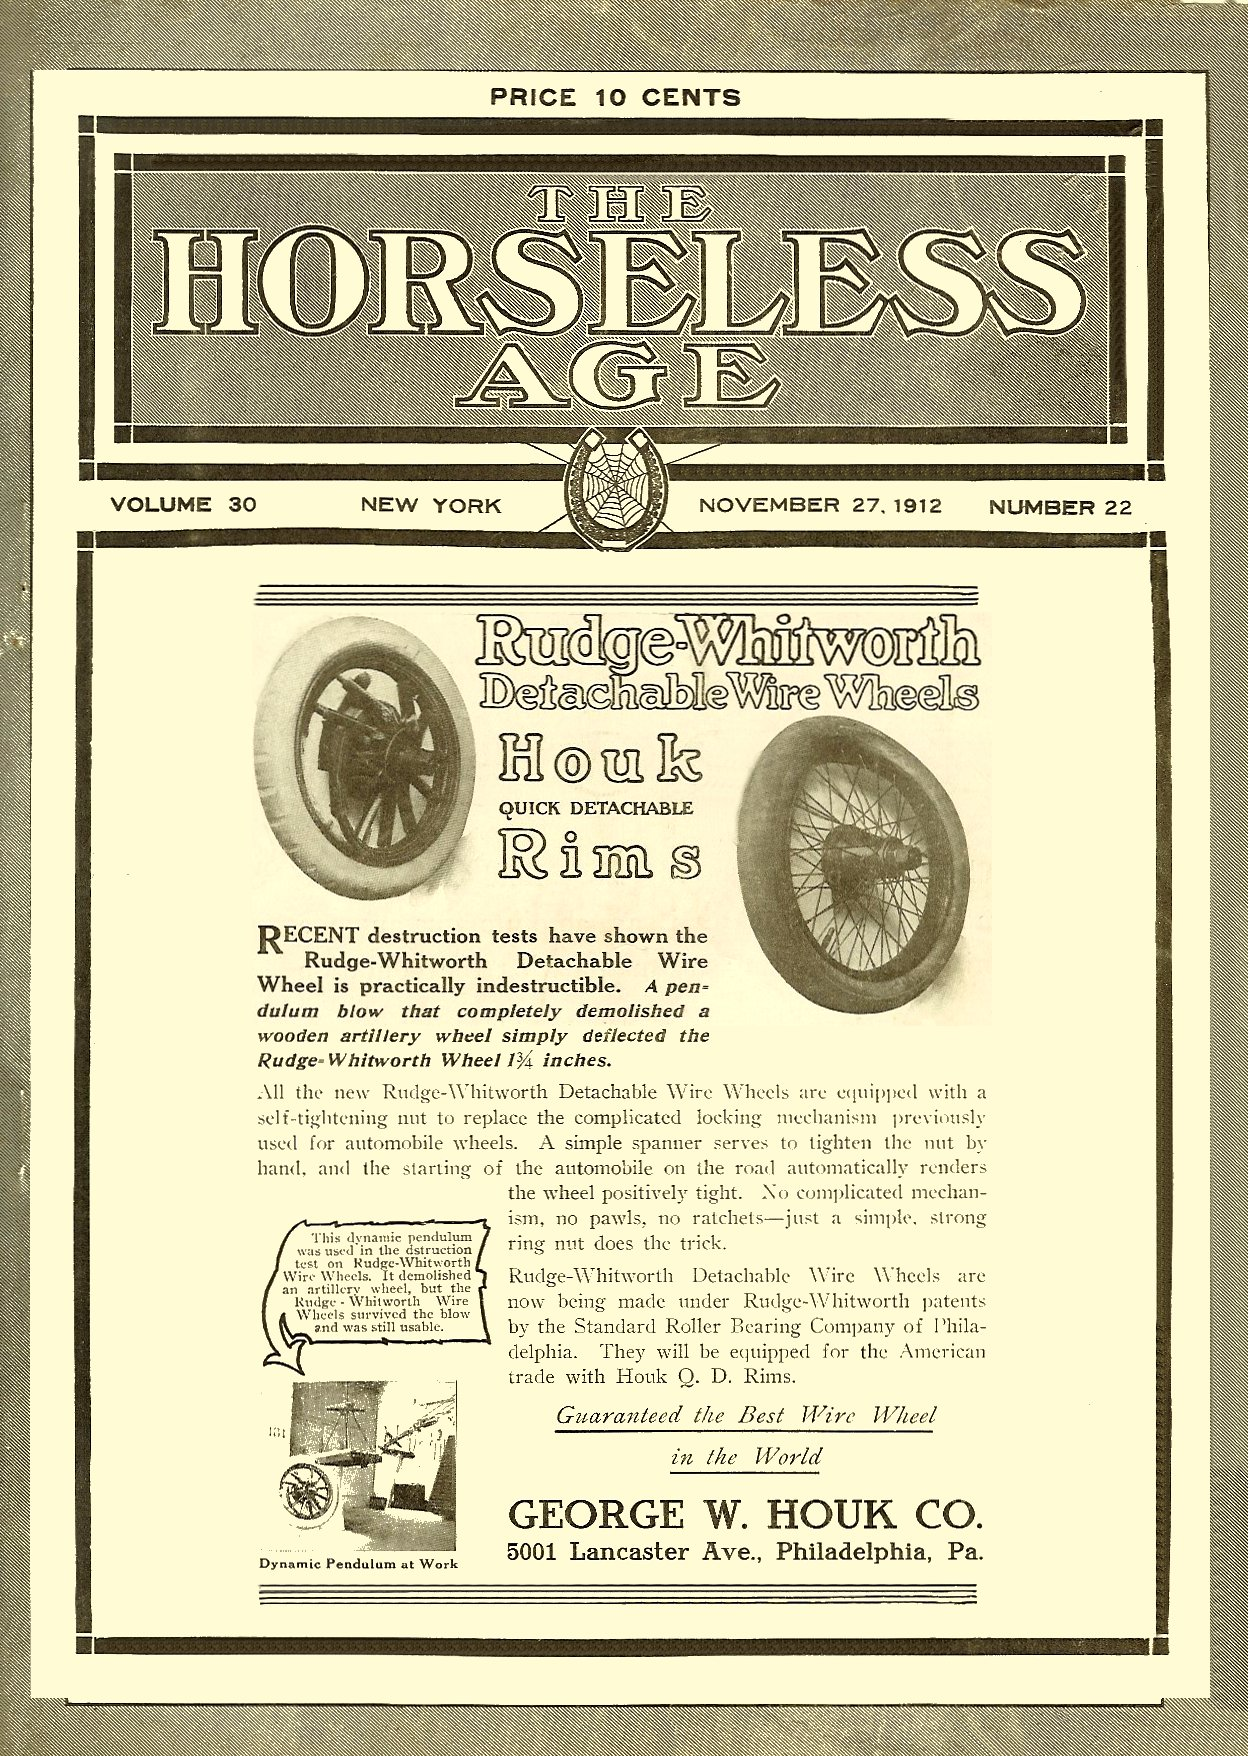 1912 11 27 Rudge-Whitworth Detachable Wire Wheels THE HORSELESS AGE Vol. 30, No. 22 November 27, 1912 9″x12″ Front cover